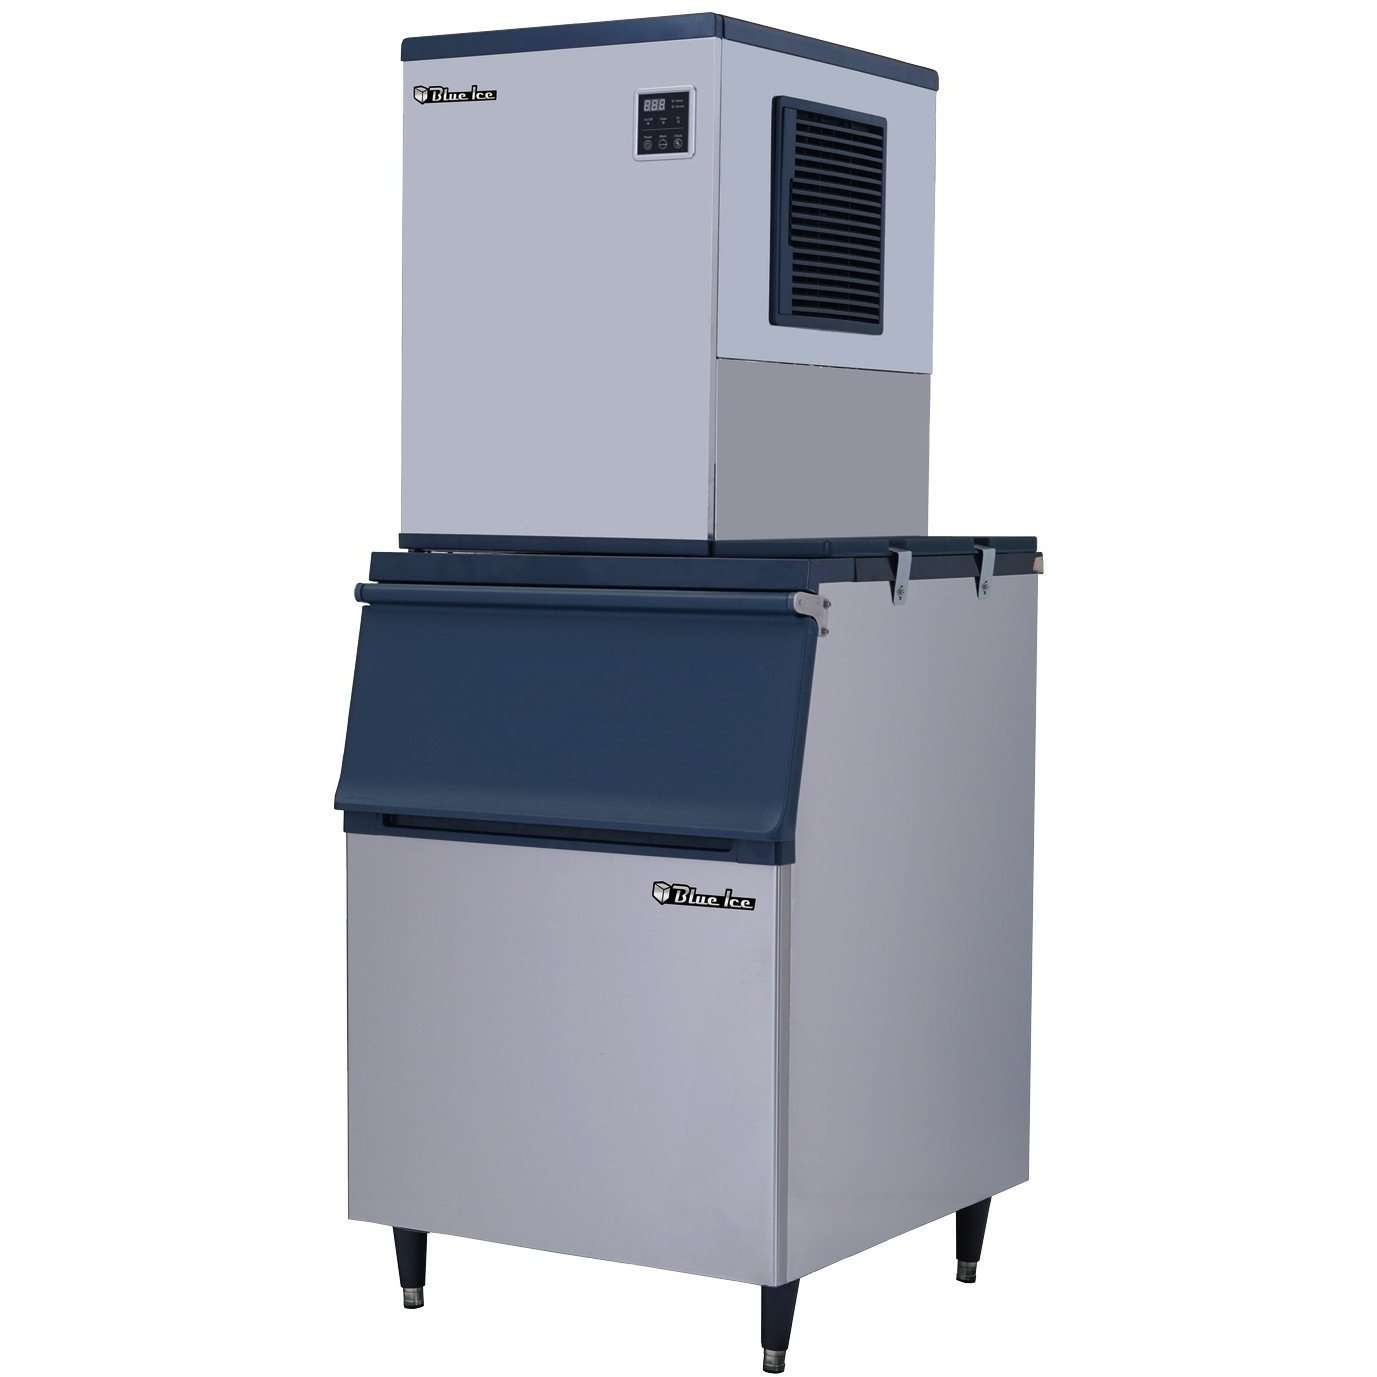 Blue ice commercial ice maker lbs commercial and faucet